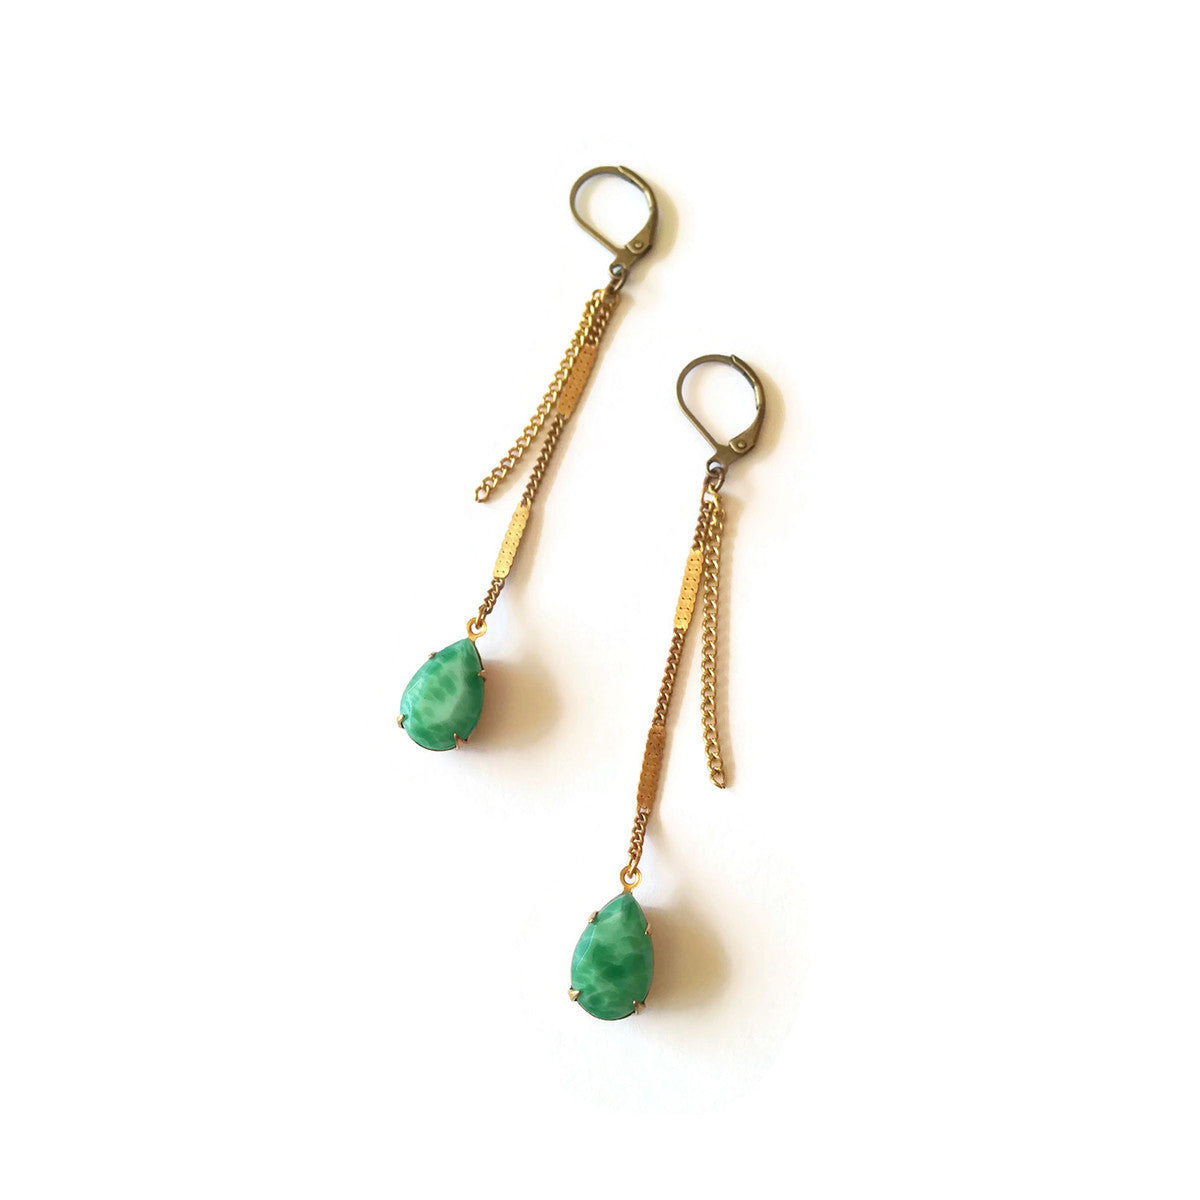 Jade green earrings with chains